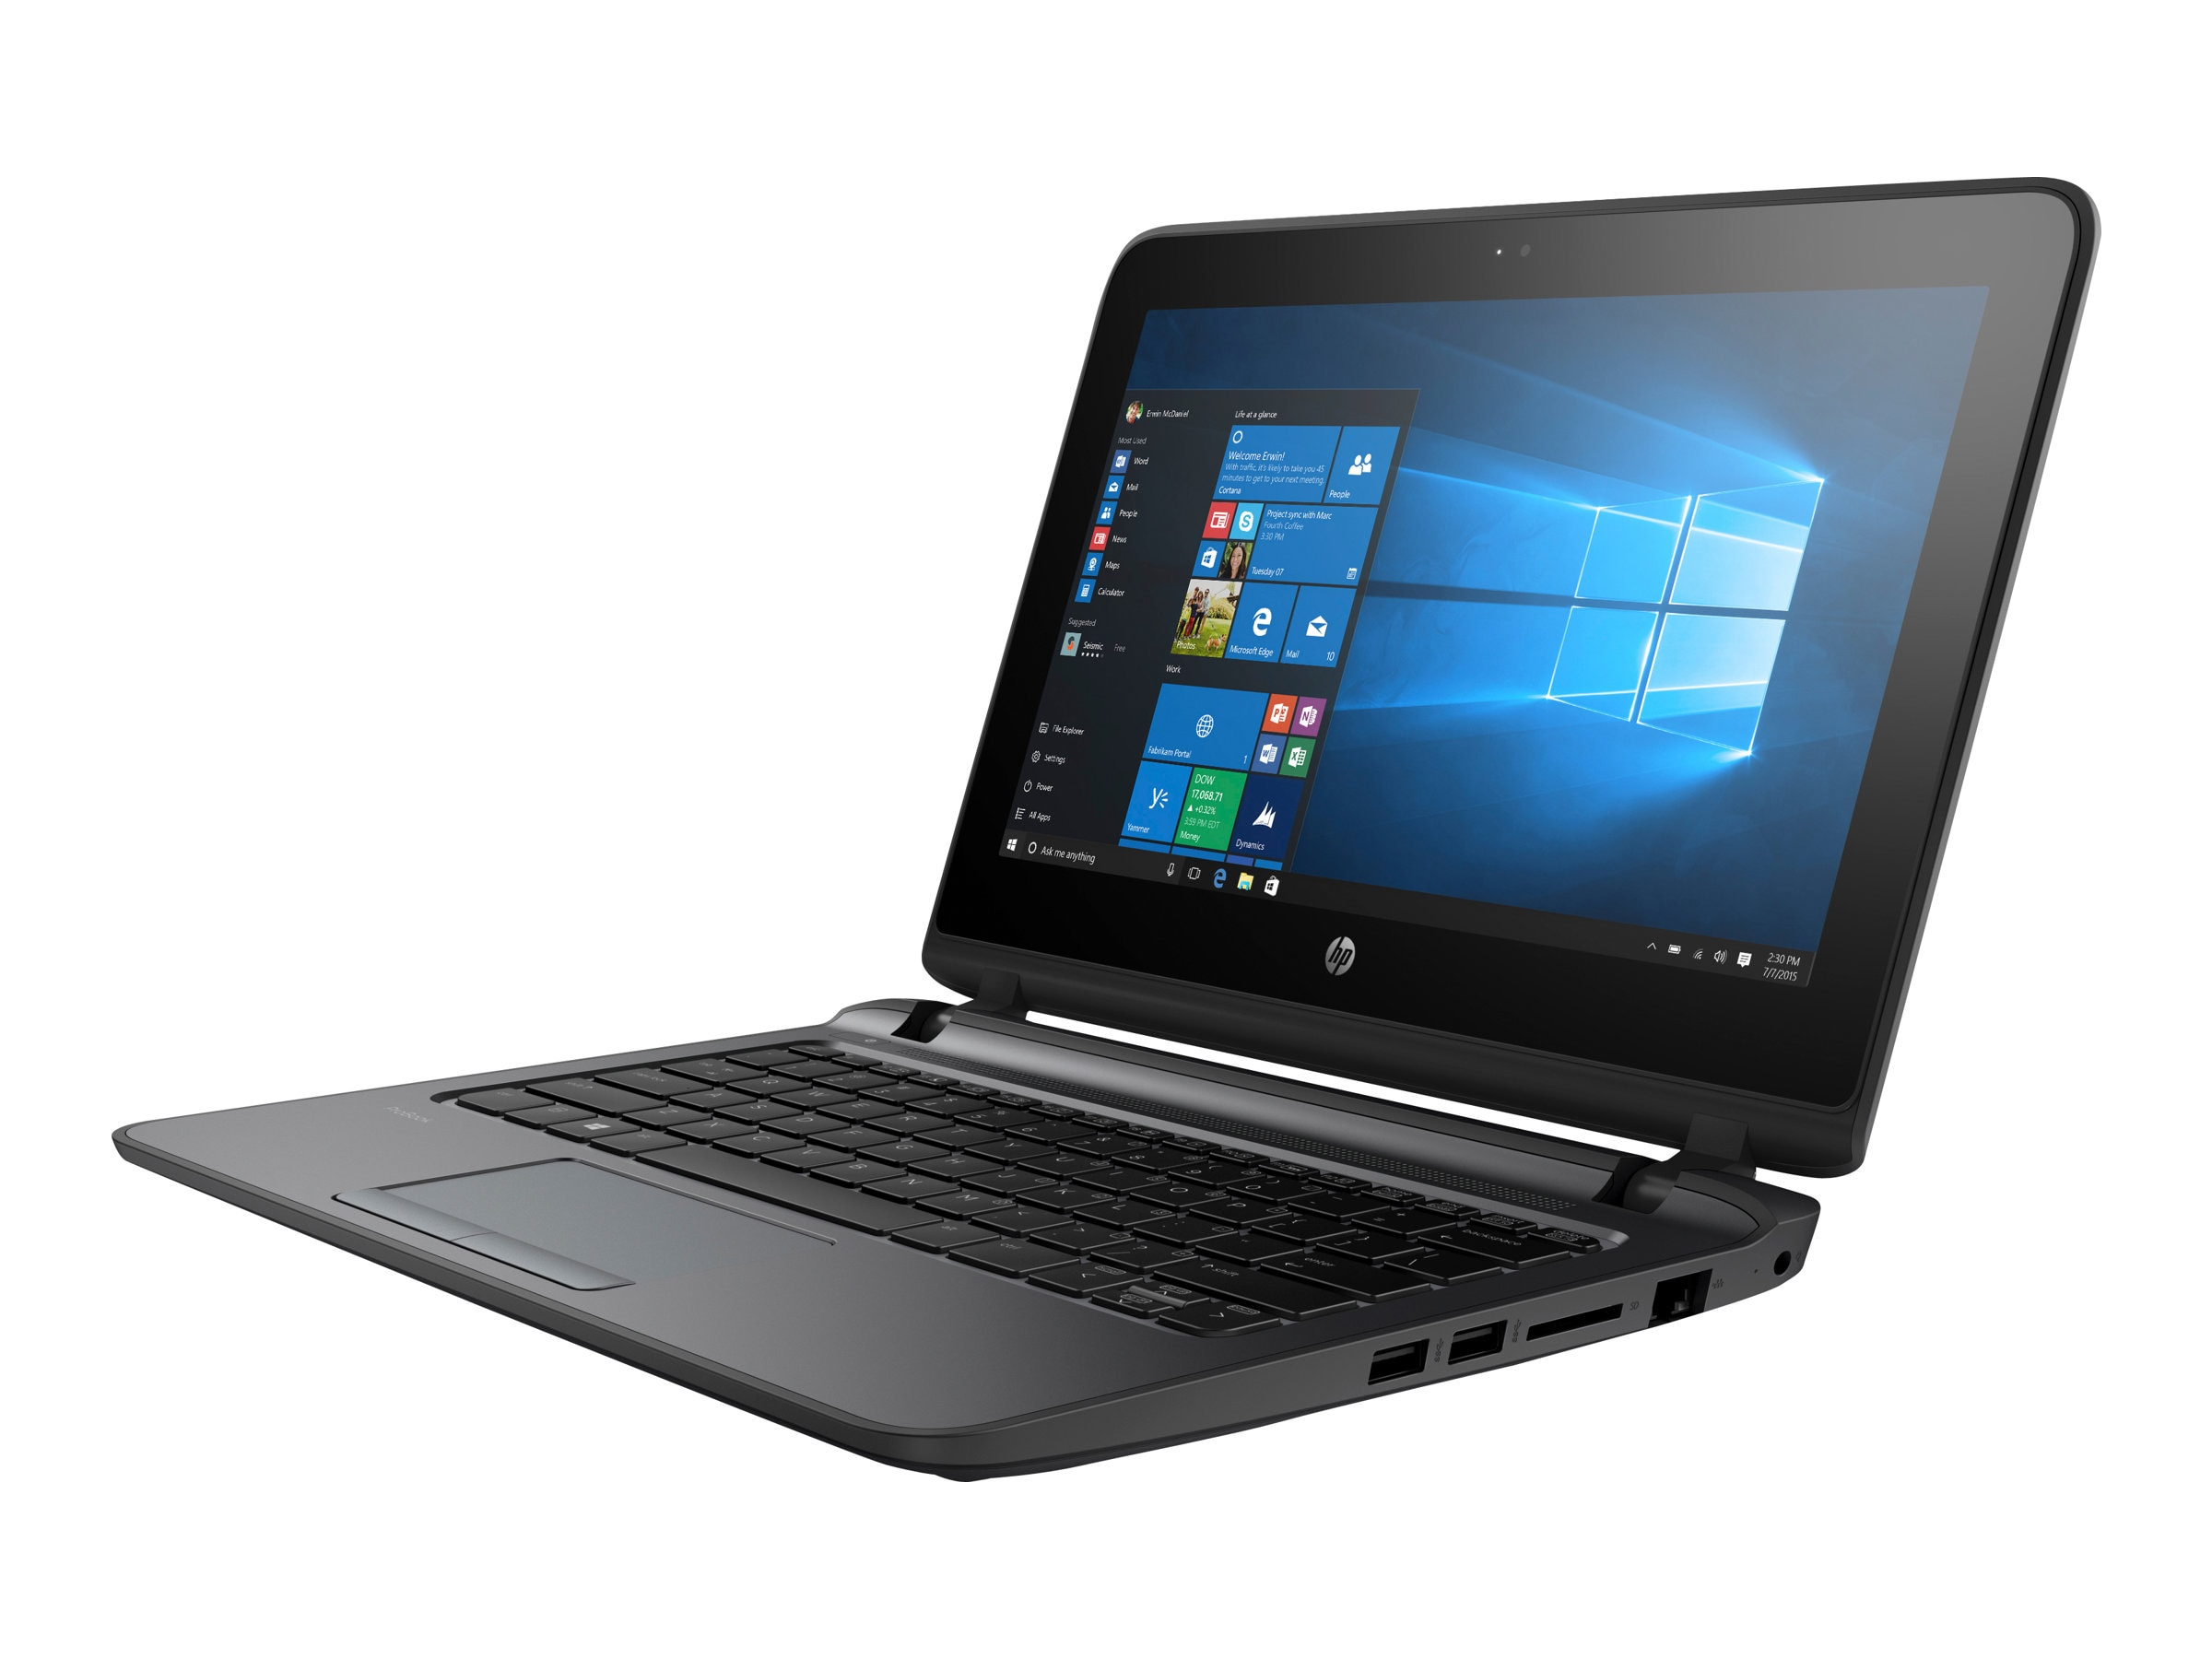 HP Shape the Future ProBook 11 EE G2 Celeron 3855U 1.6GHz 4GB 500GB ac BT WC 11.6 HD MT W7P64-W10P